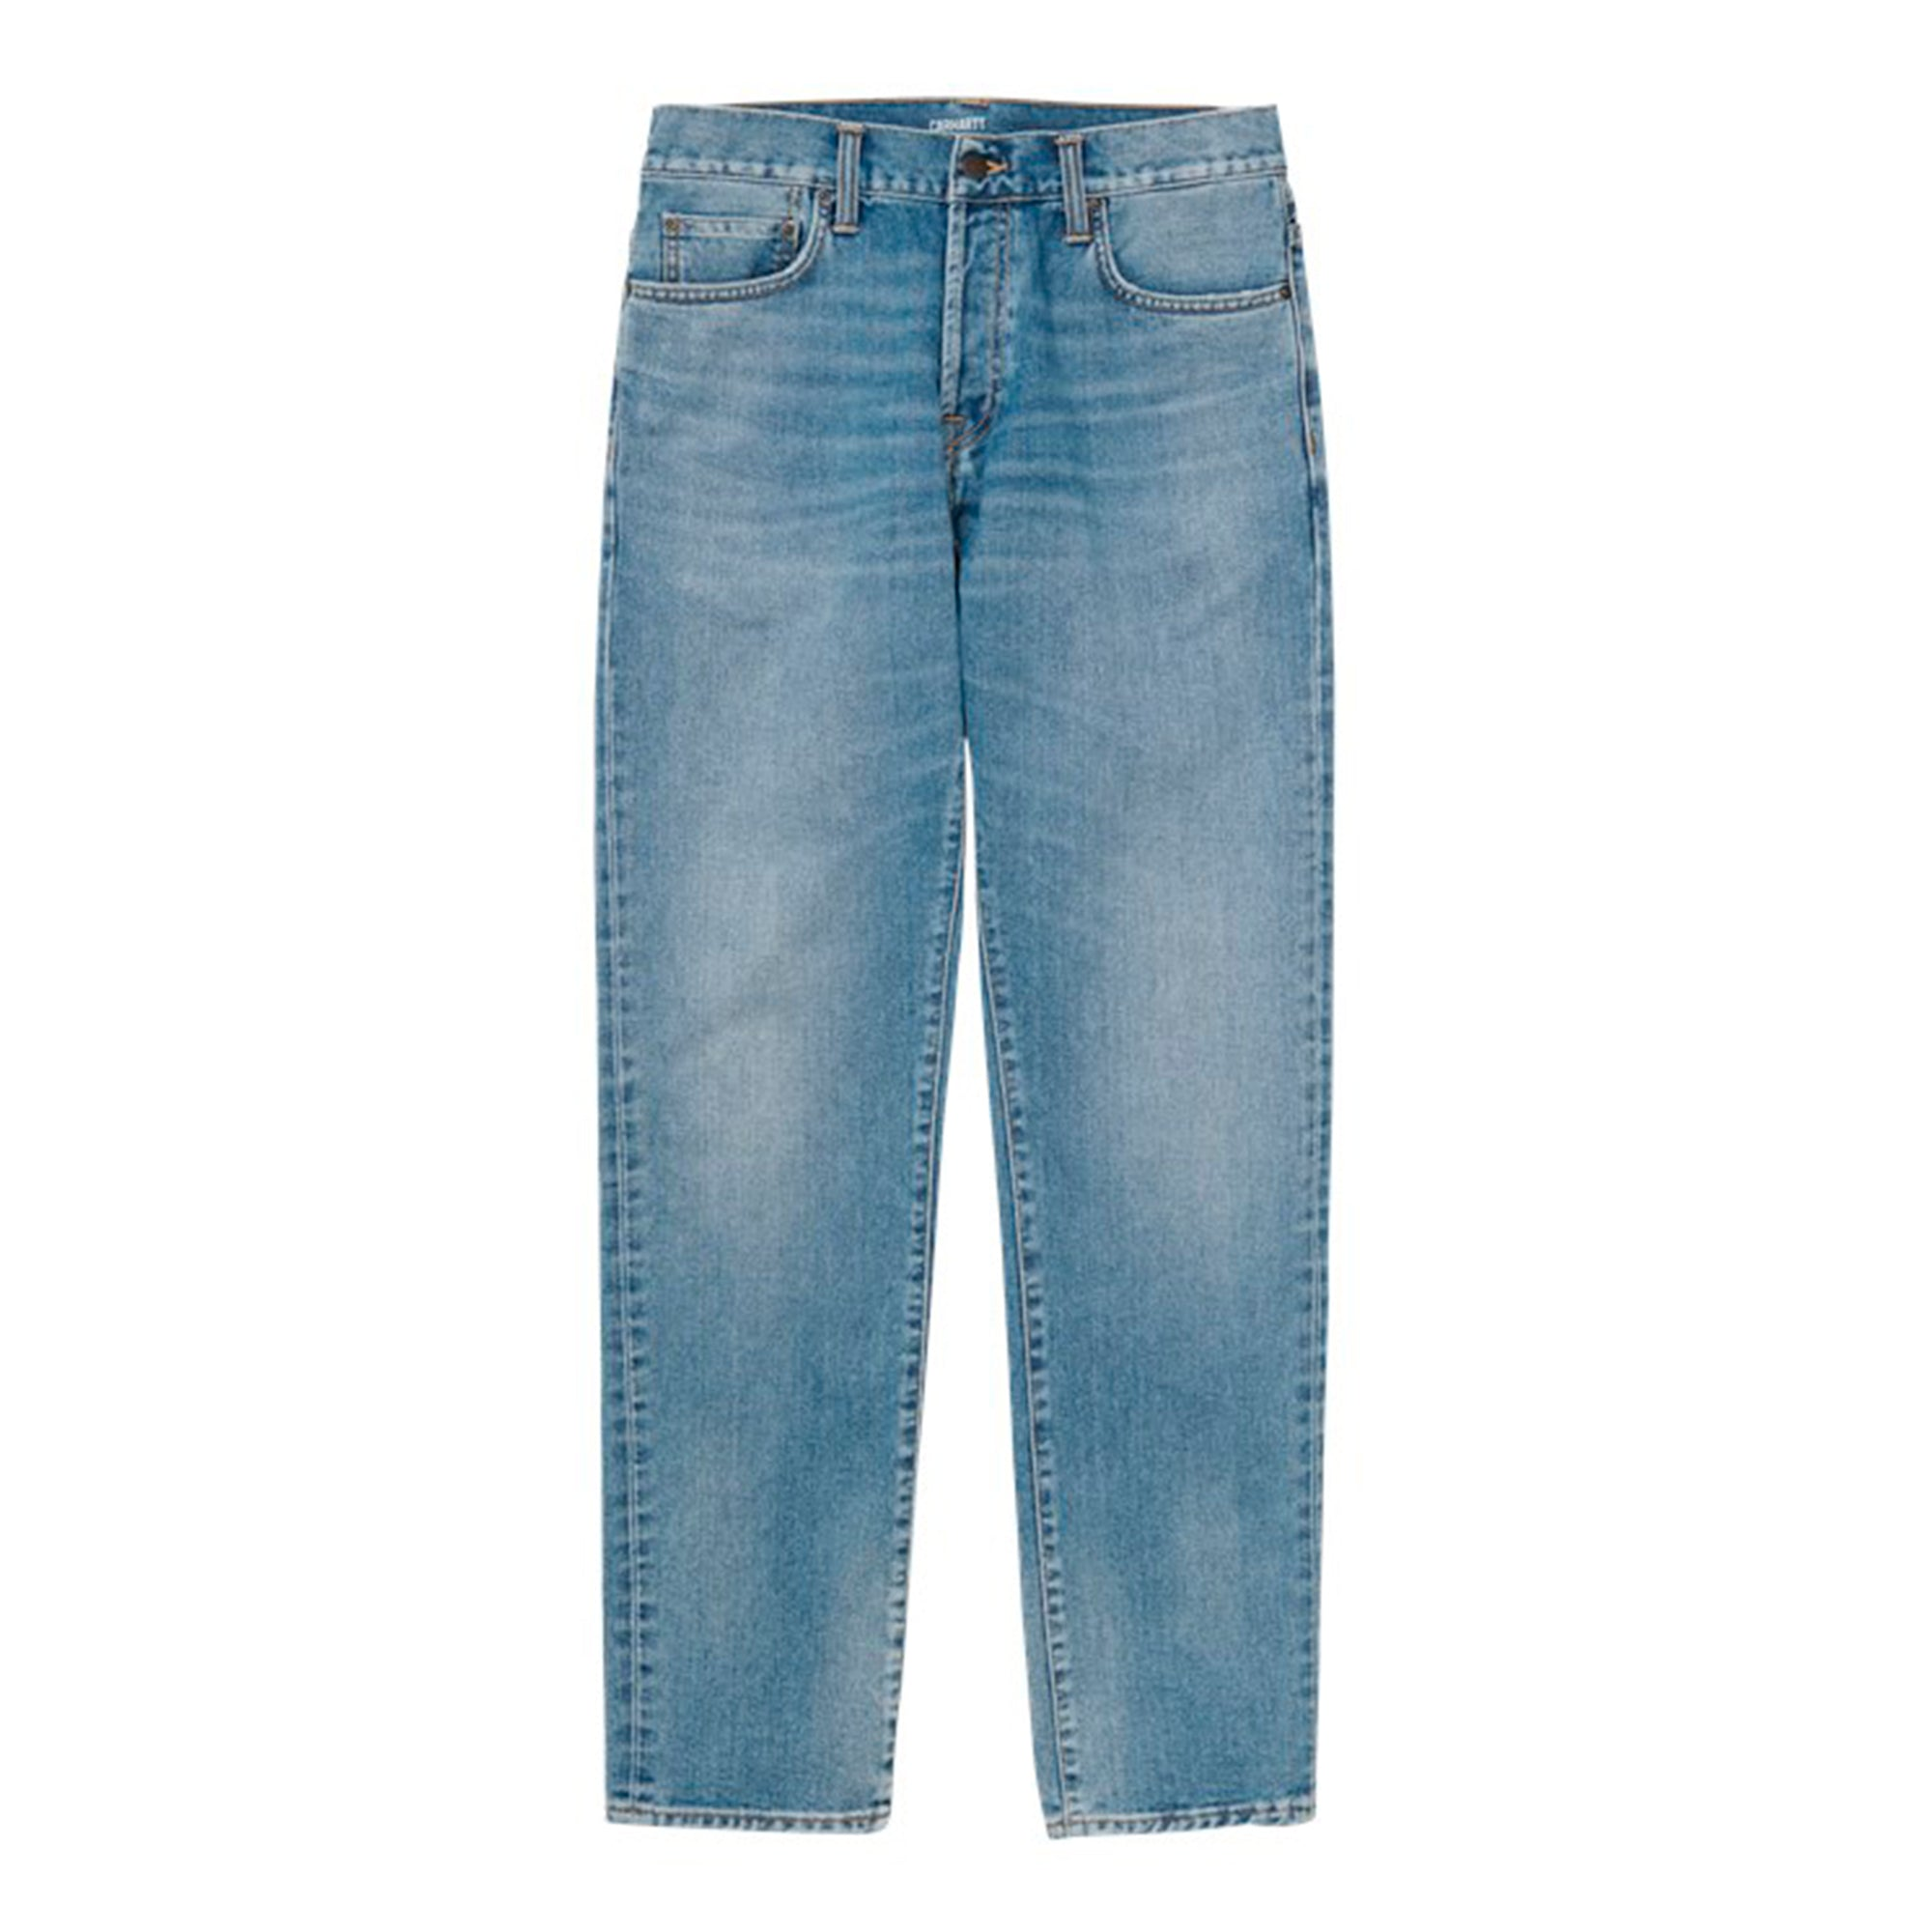 Carhartt WIP Klondike Pant: Blue Worn Bleached - The Union Project